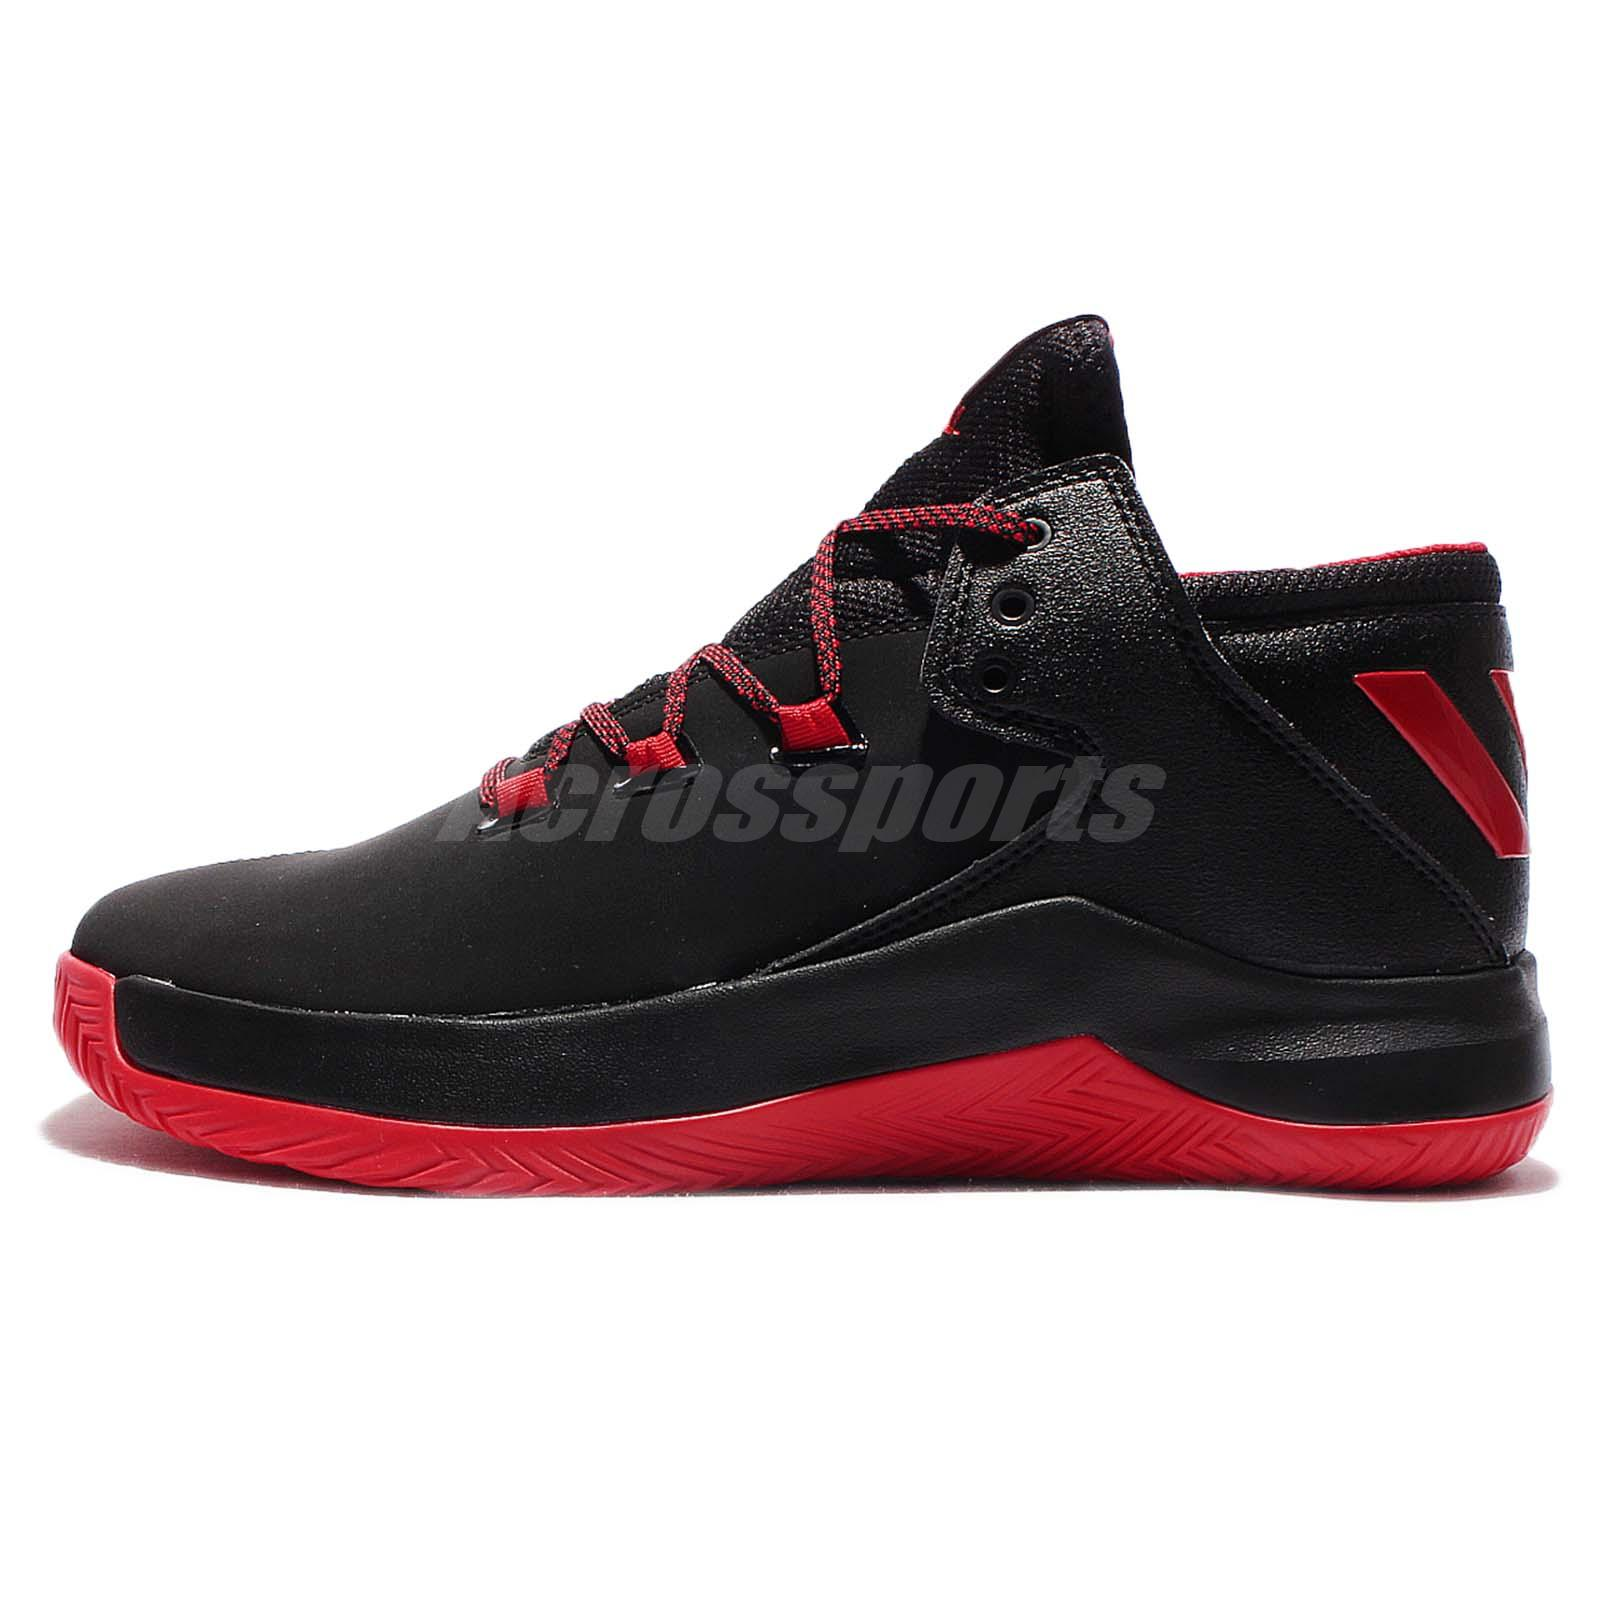 derrick rose shoes red - photo #41